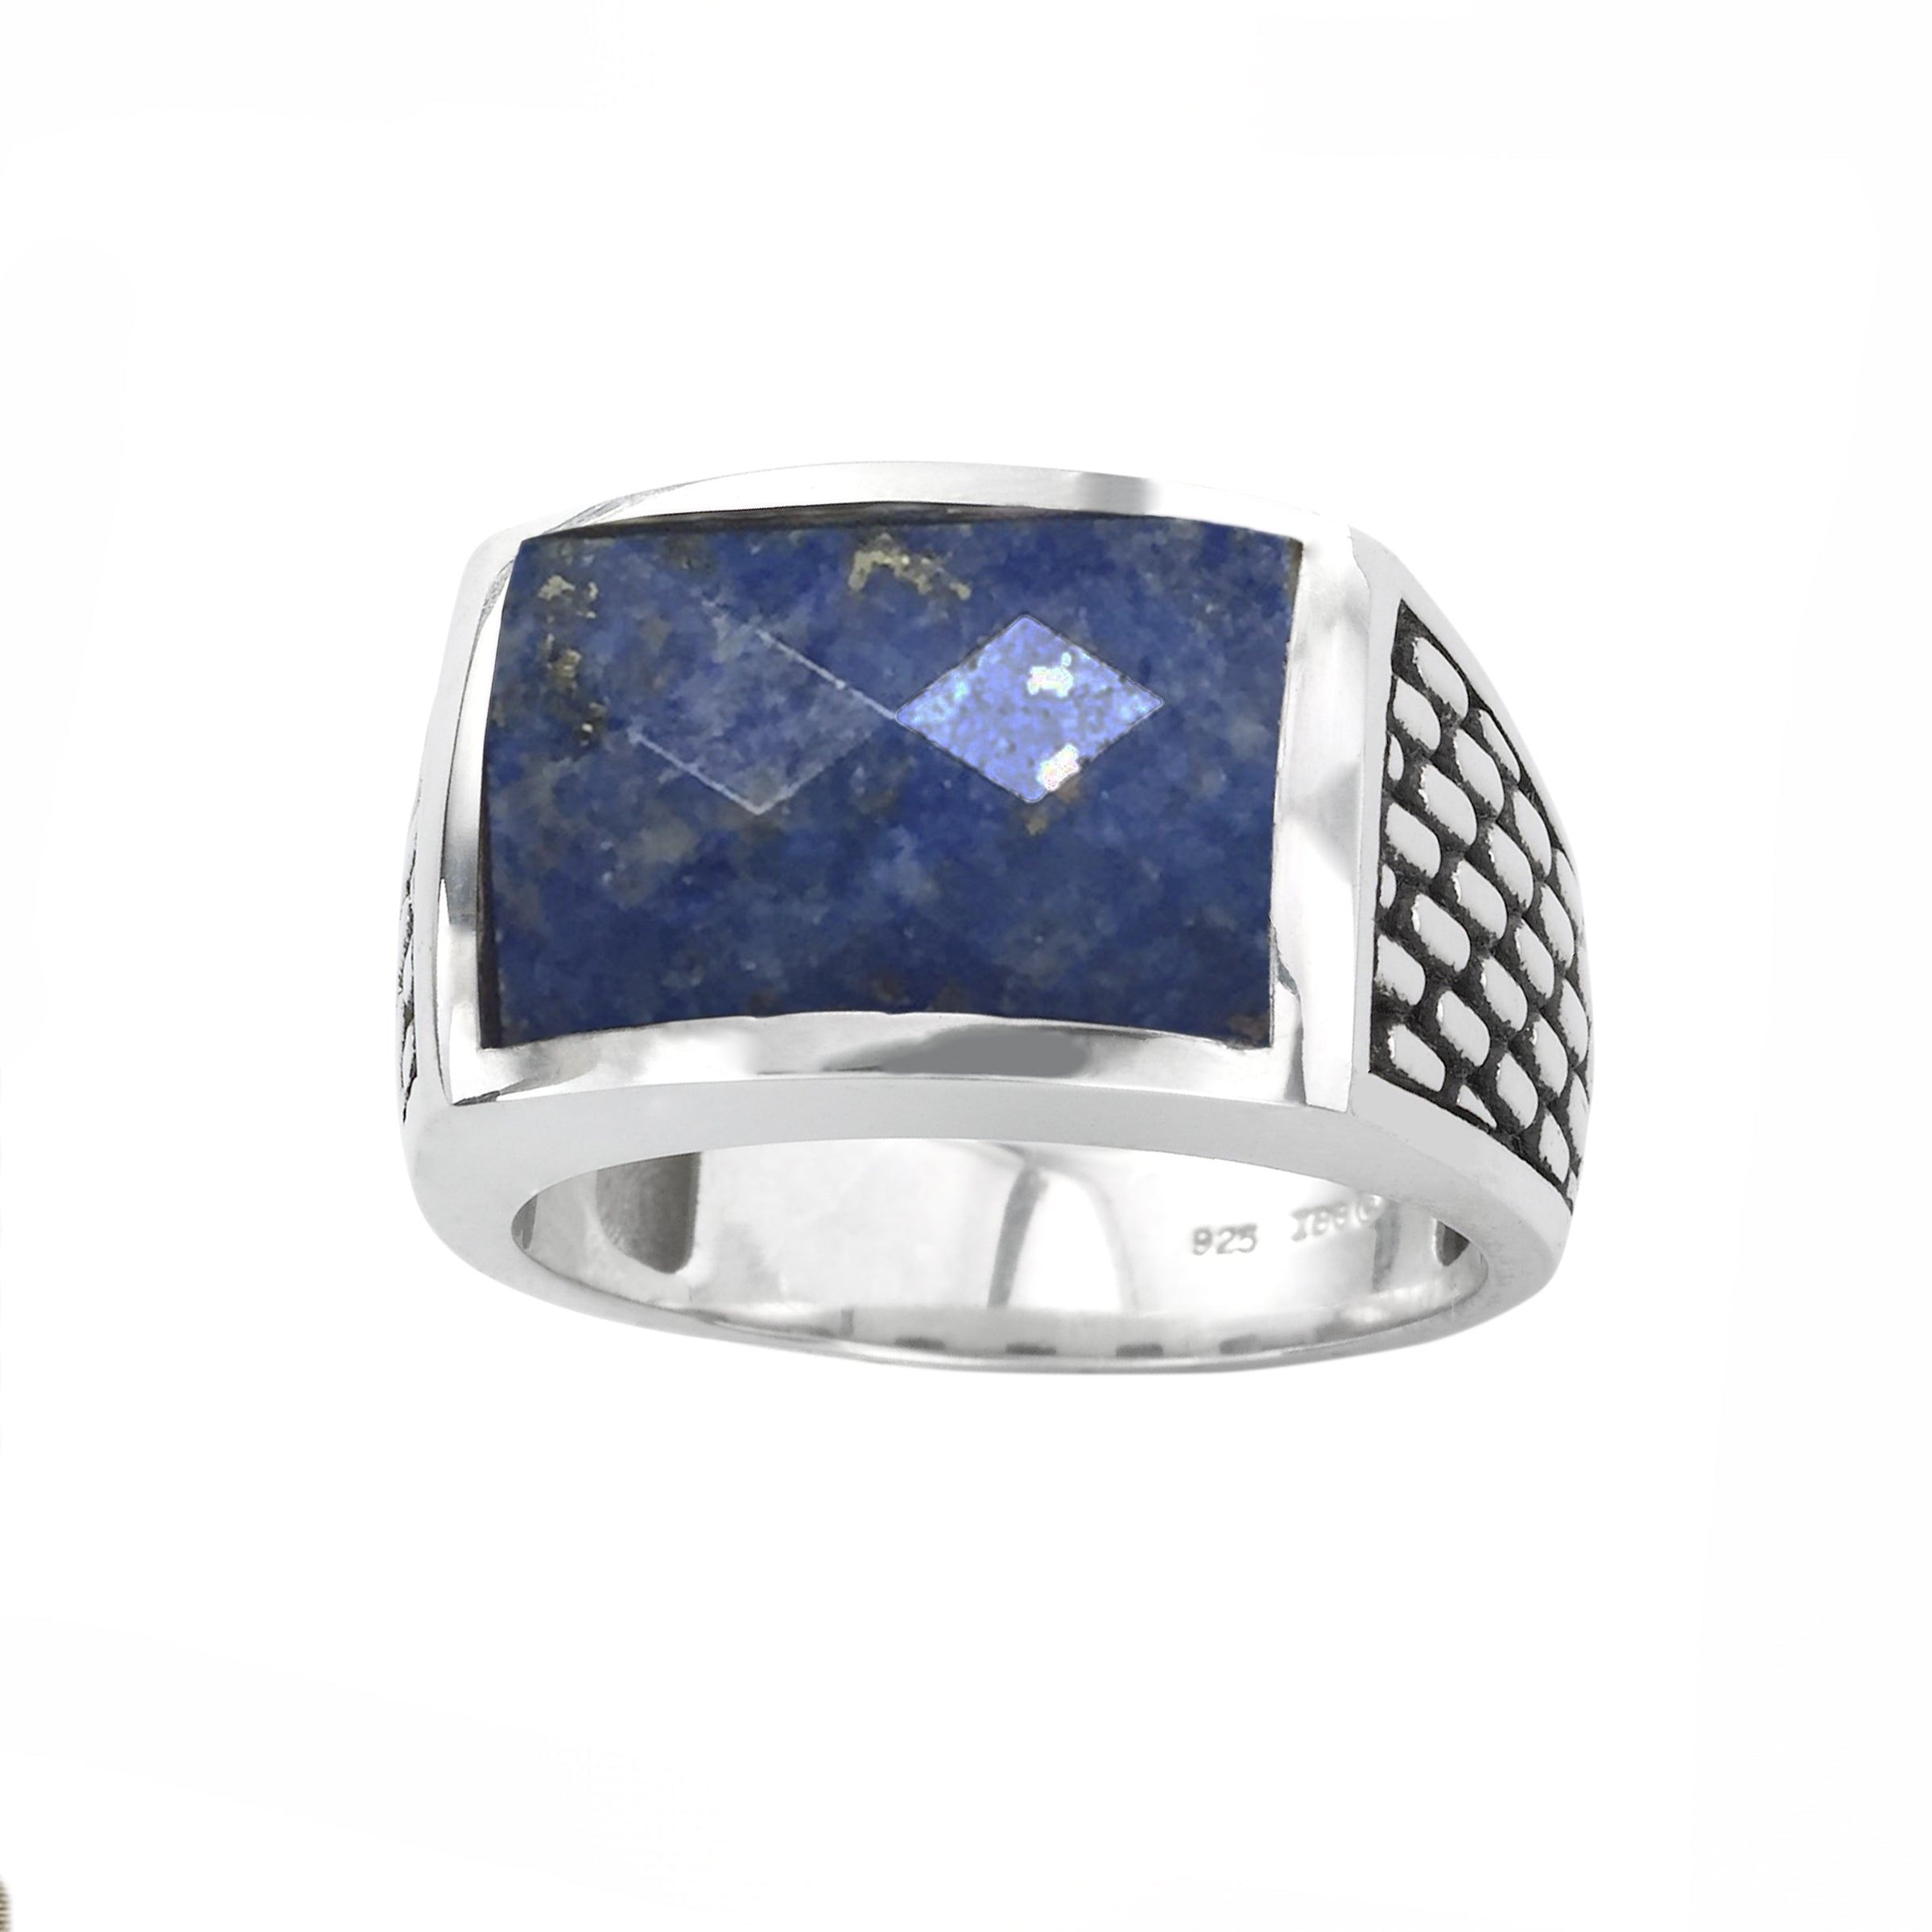 Faceted Sodalite Ring, Size 10, Sterling Silver